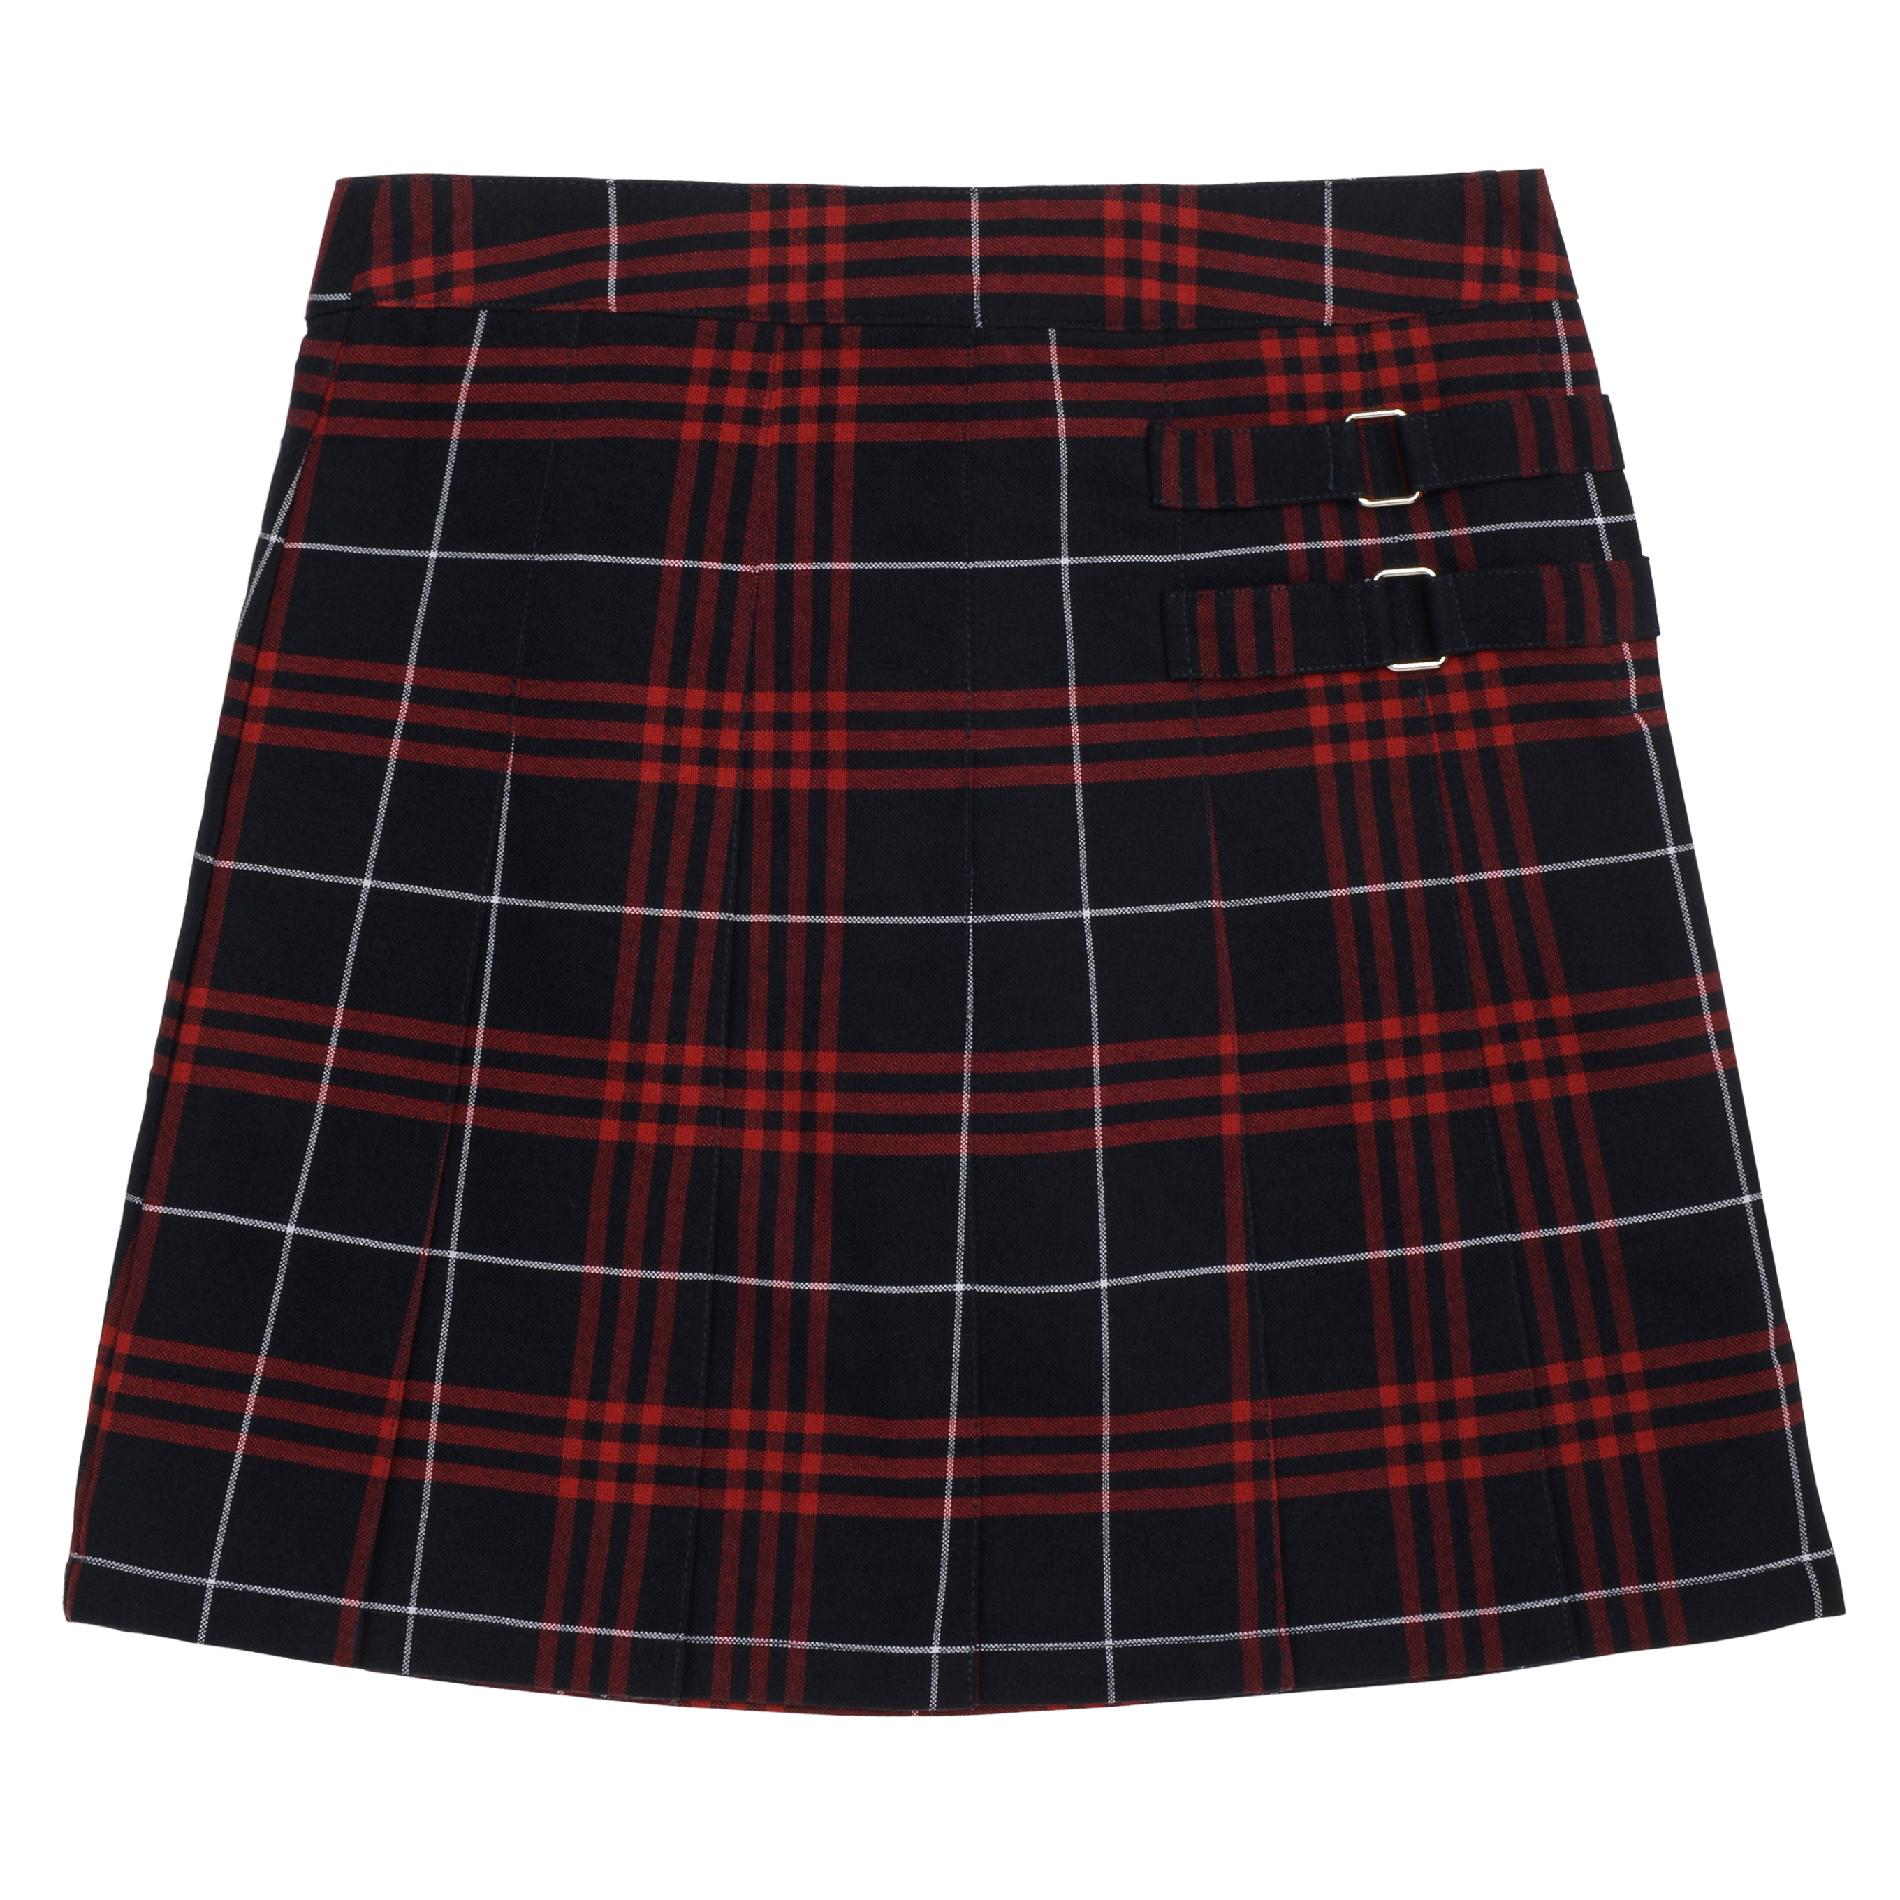 School Skirts Kmart At School By French Toast Girls Navy Red Plaid Two Tab